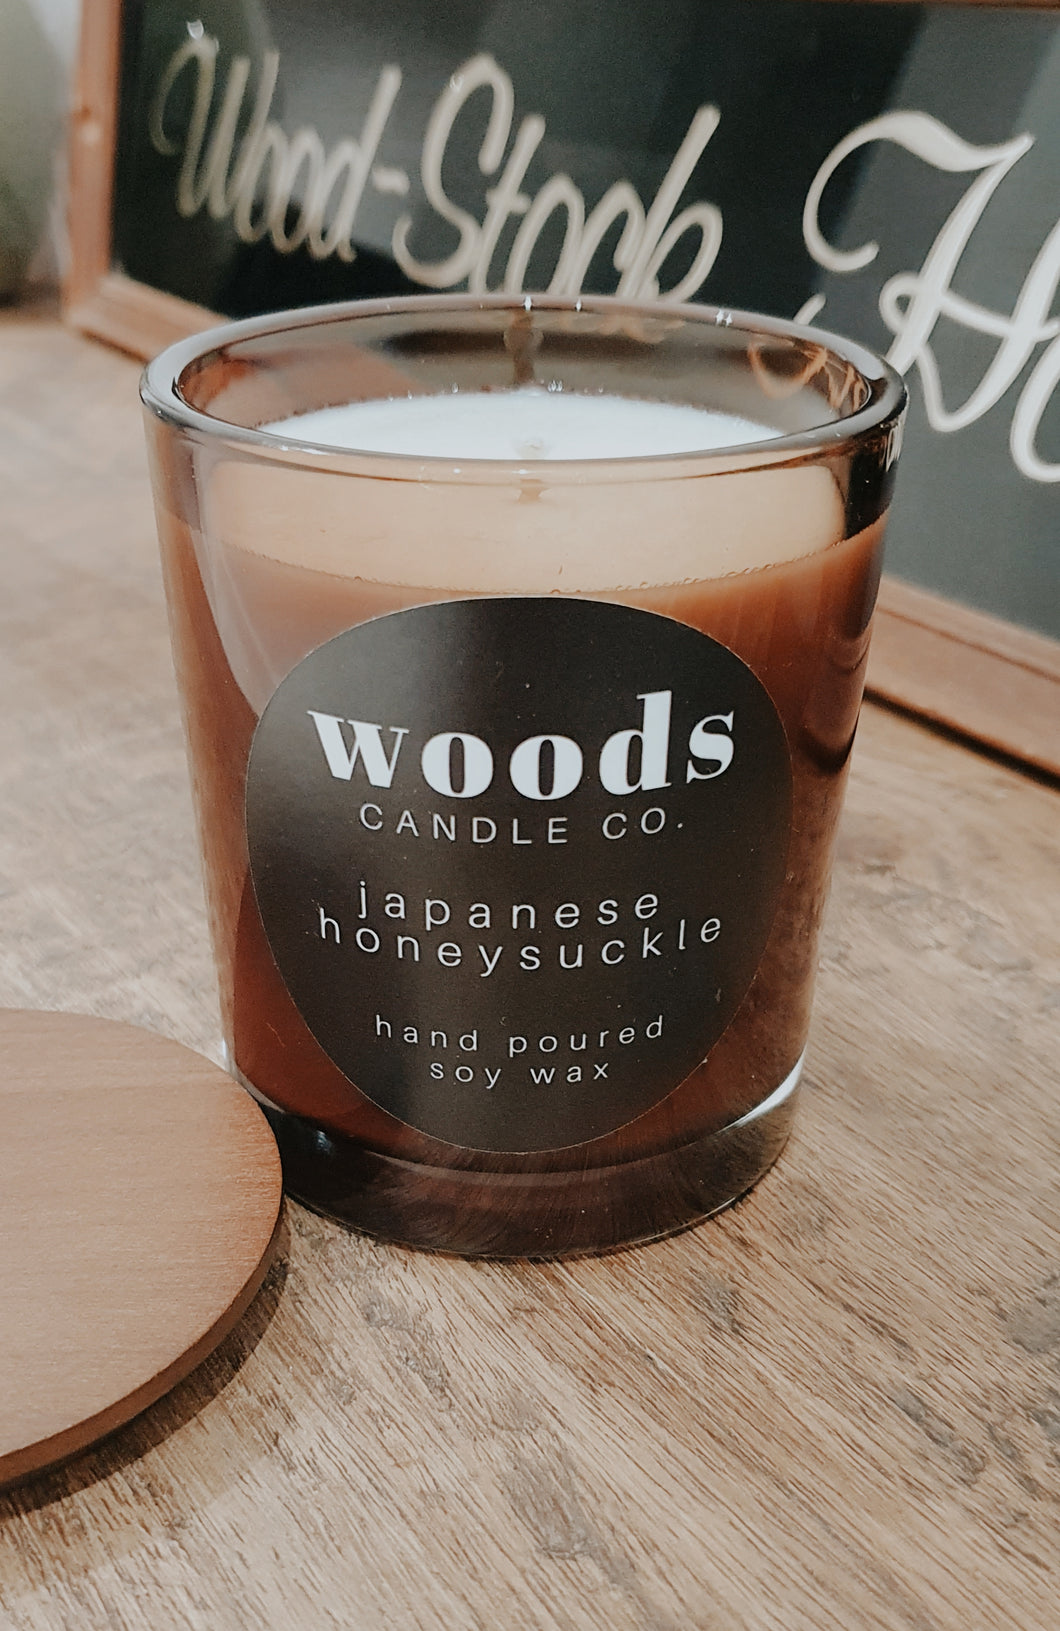 WOODS CANDLE CO - JAPANESE HONEYSUCKLE